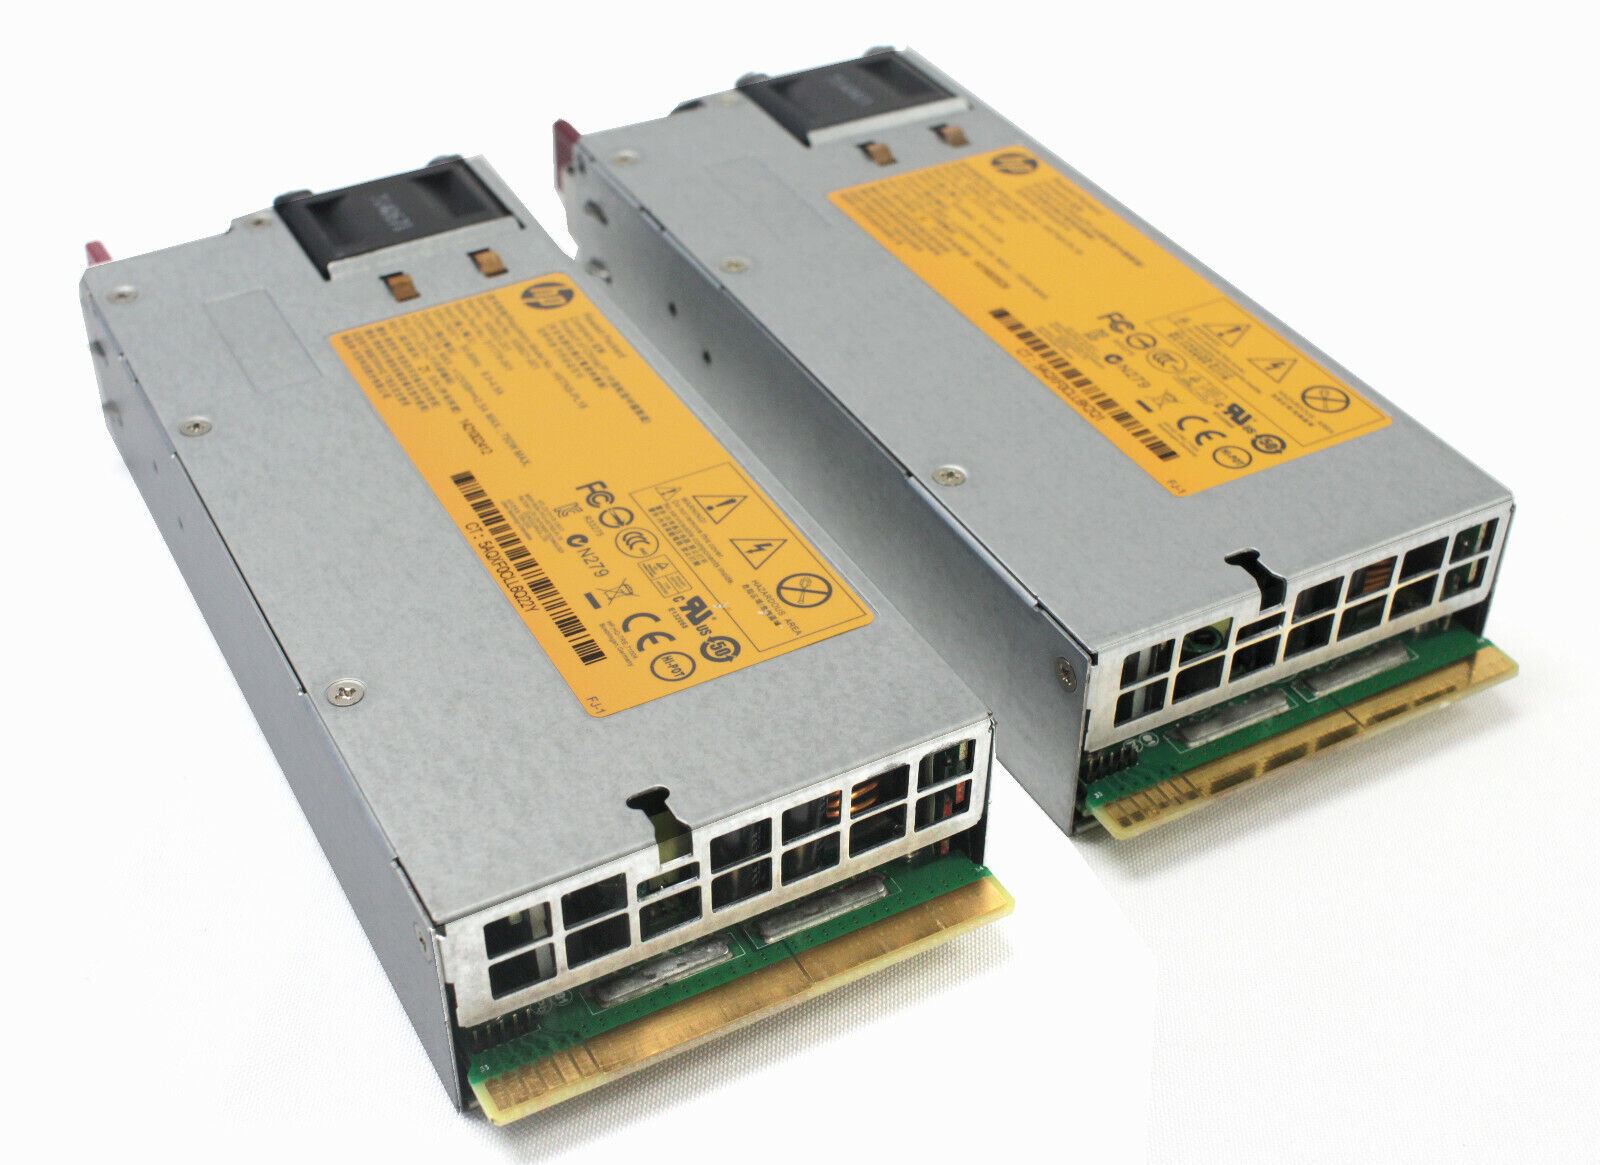 Lot of 2 HP 506821-001 750W Power Supply DPS-750RB A HSTNS-PD18 506822-101 HP 506822-101, 506821-001, HSTNS-PD18